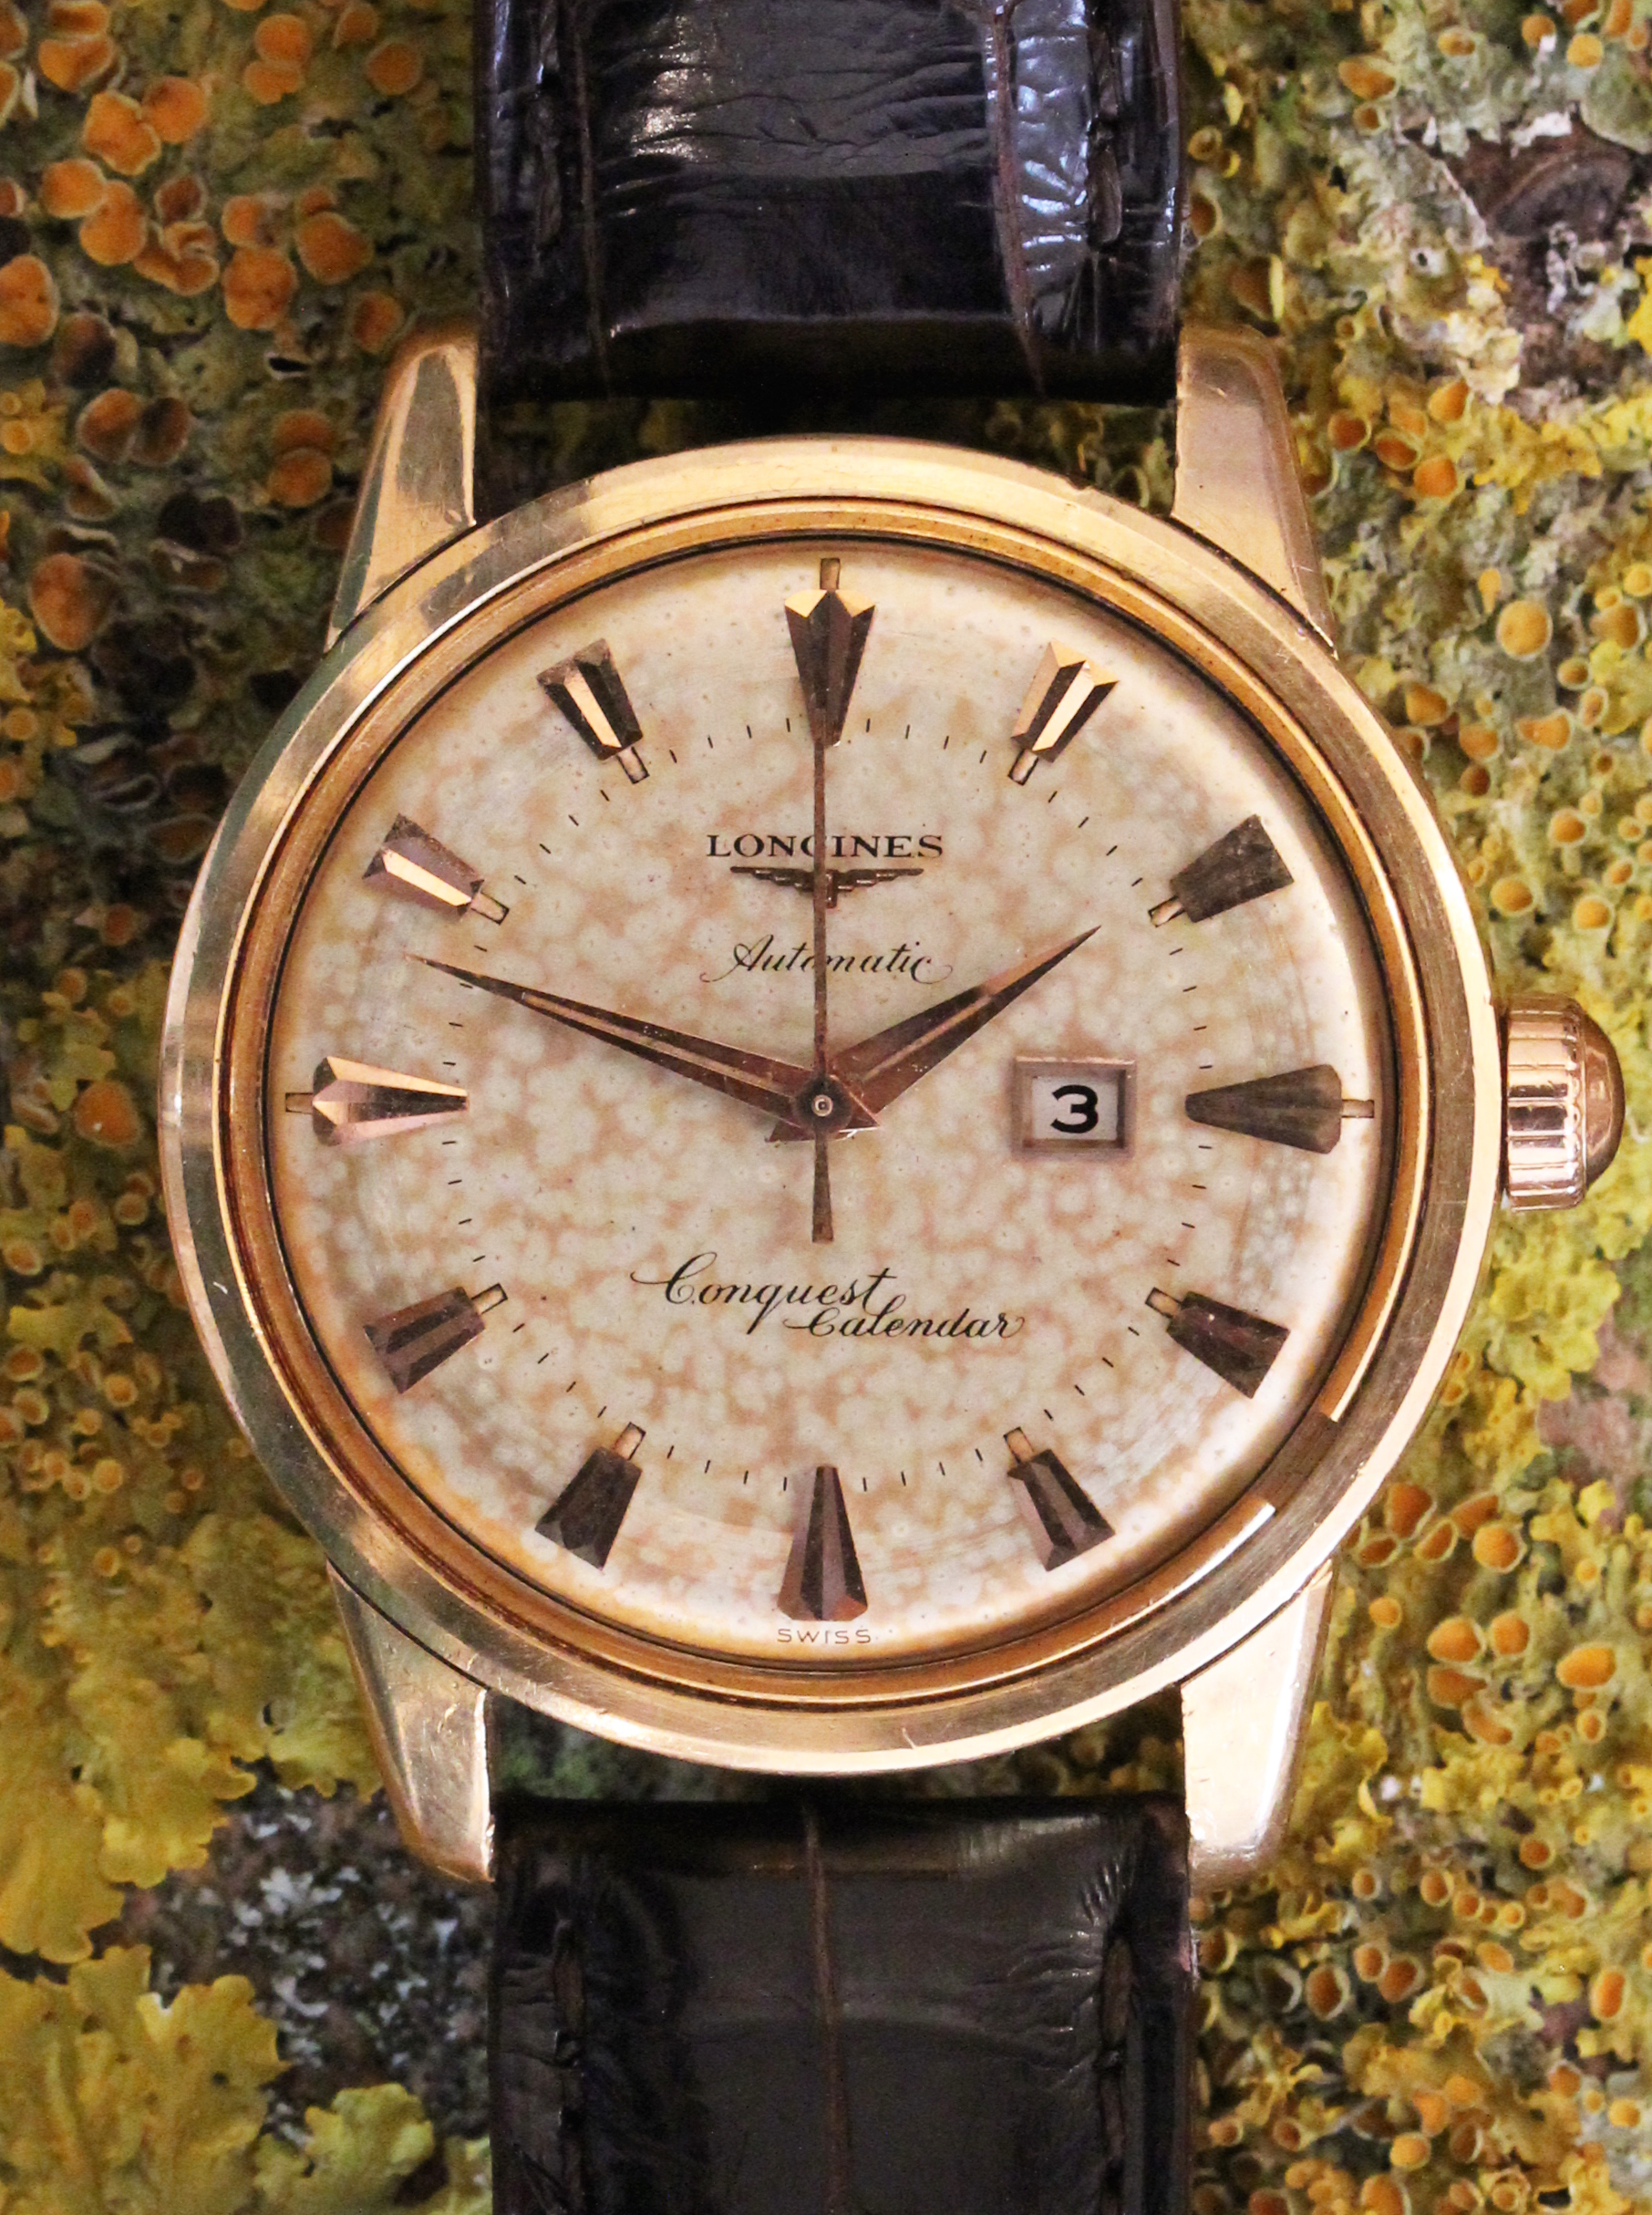 Longines Conquest Calendar in pink gold